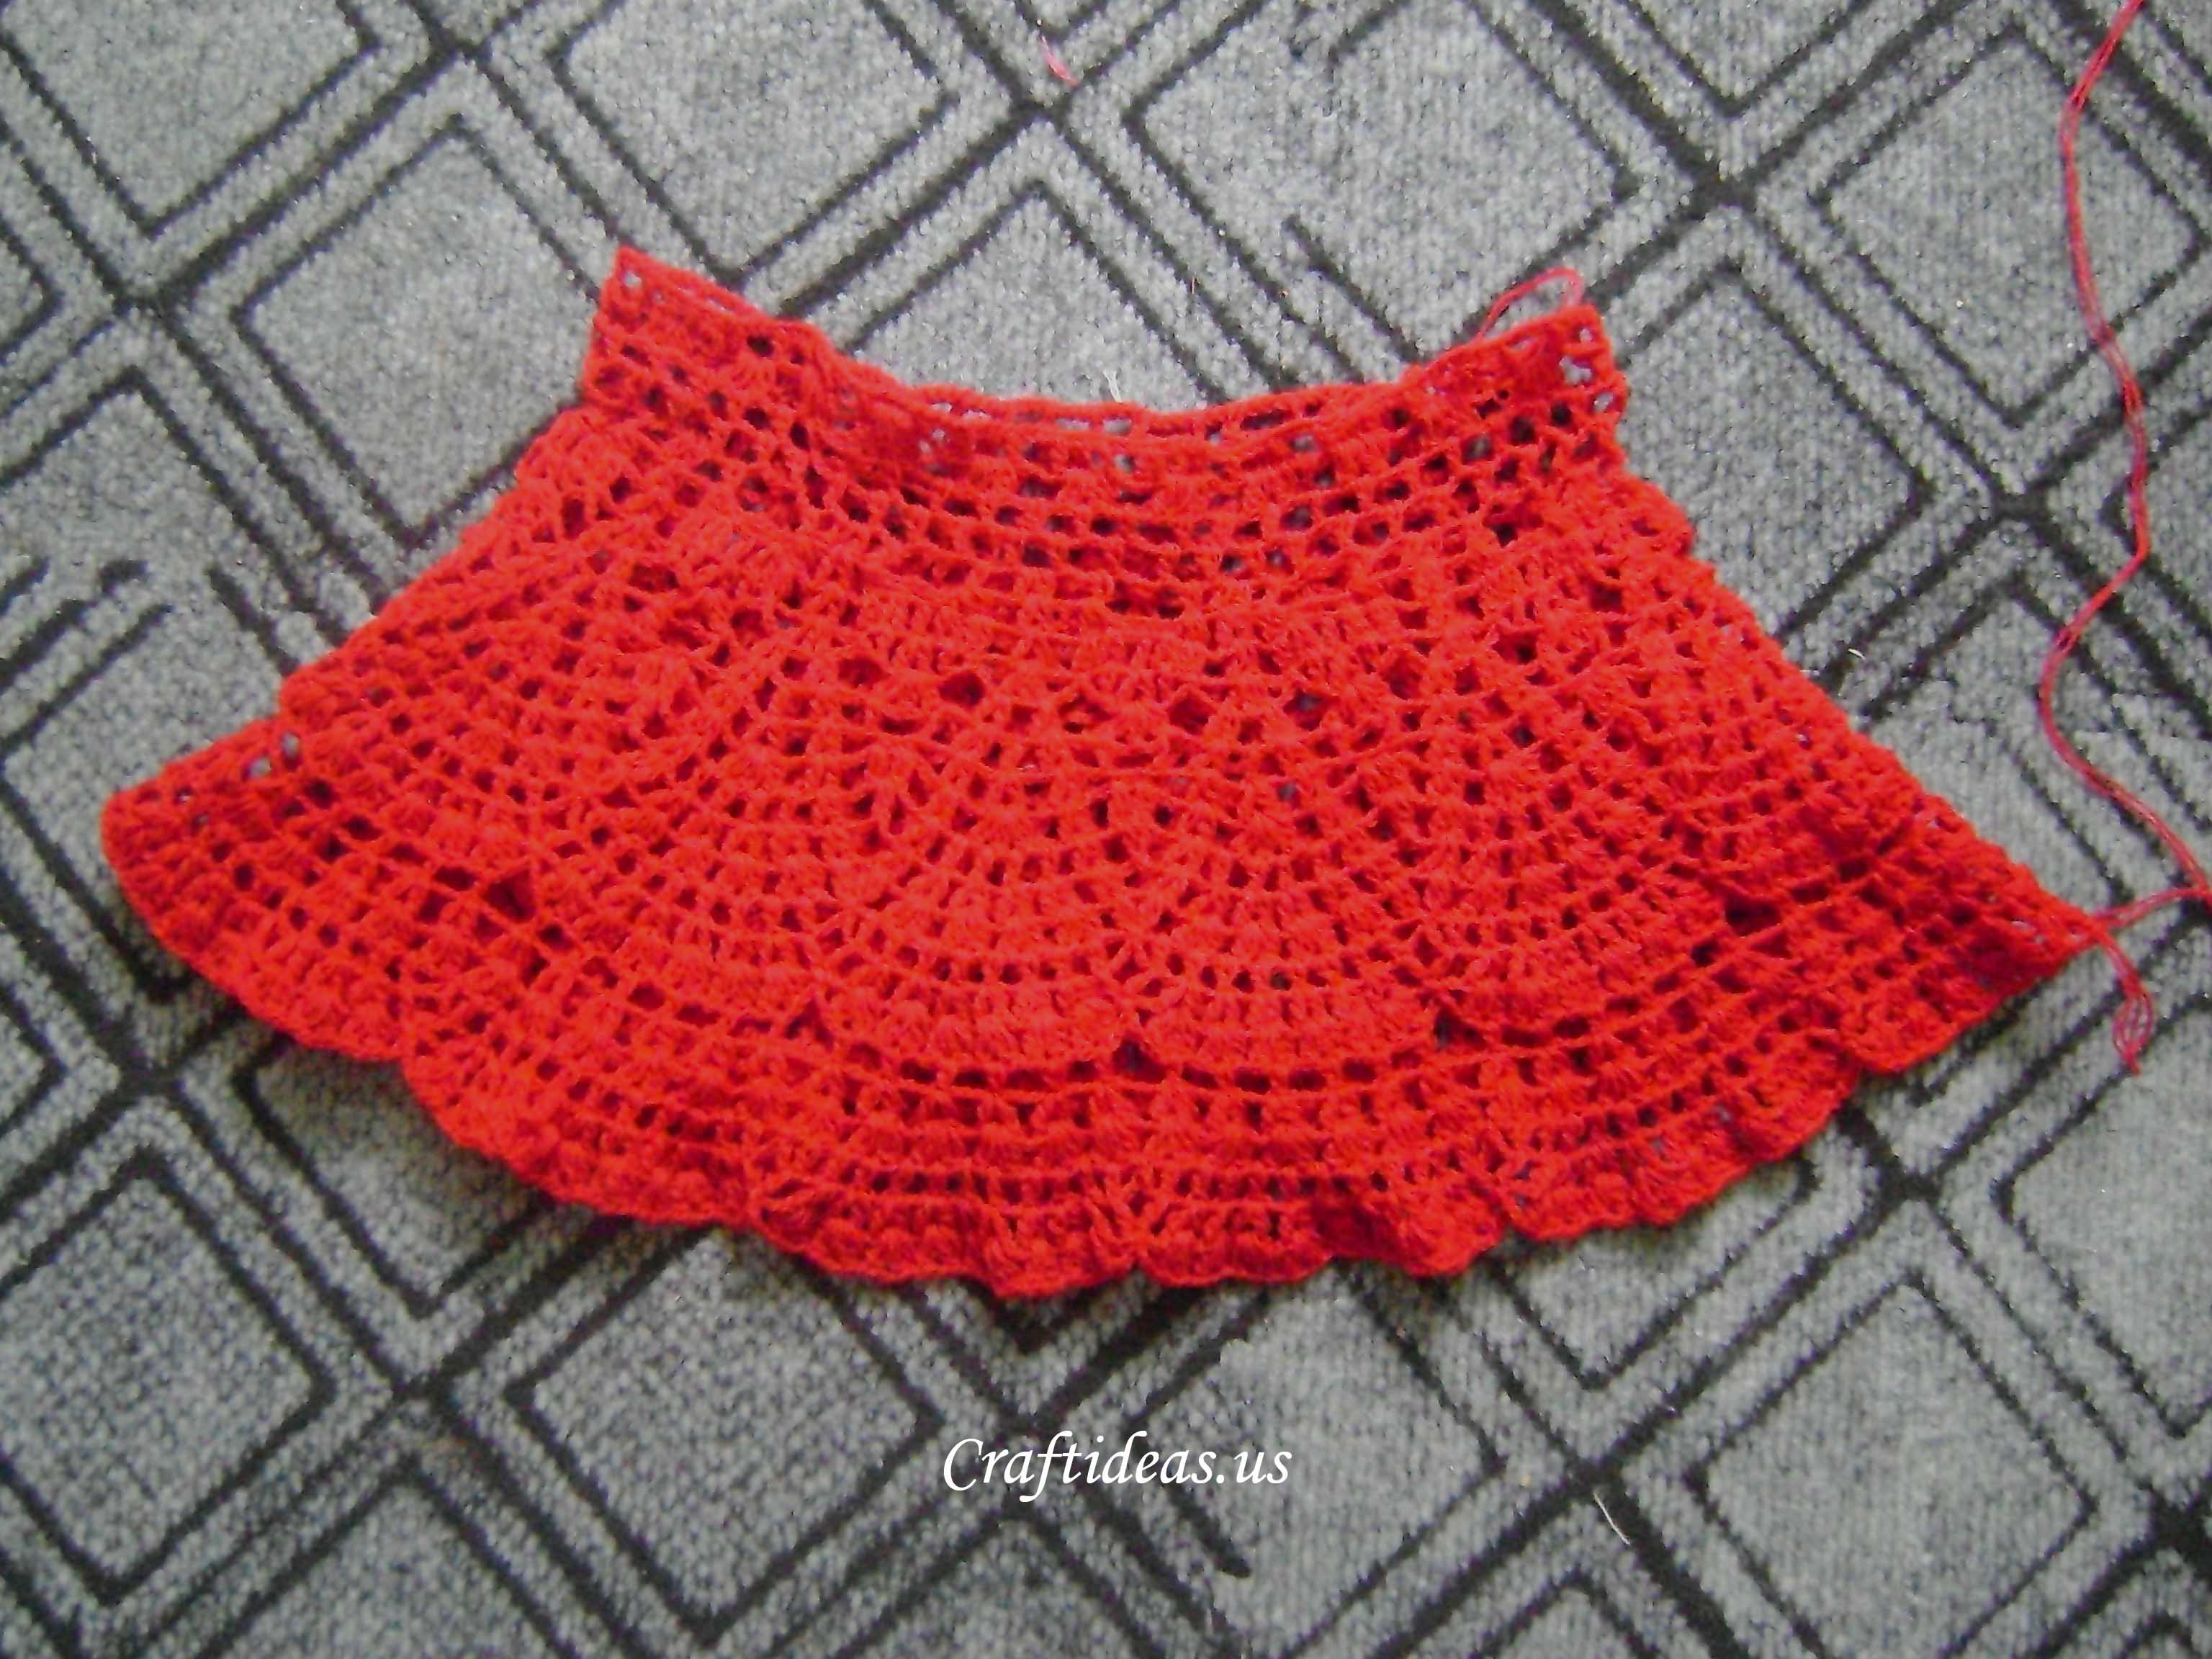 Free Crochet Pattern Child Skirt : Crochet beauty skirt for little girl - Craft Ideas